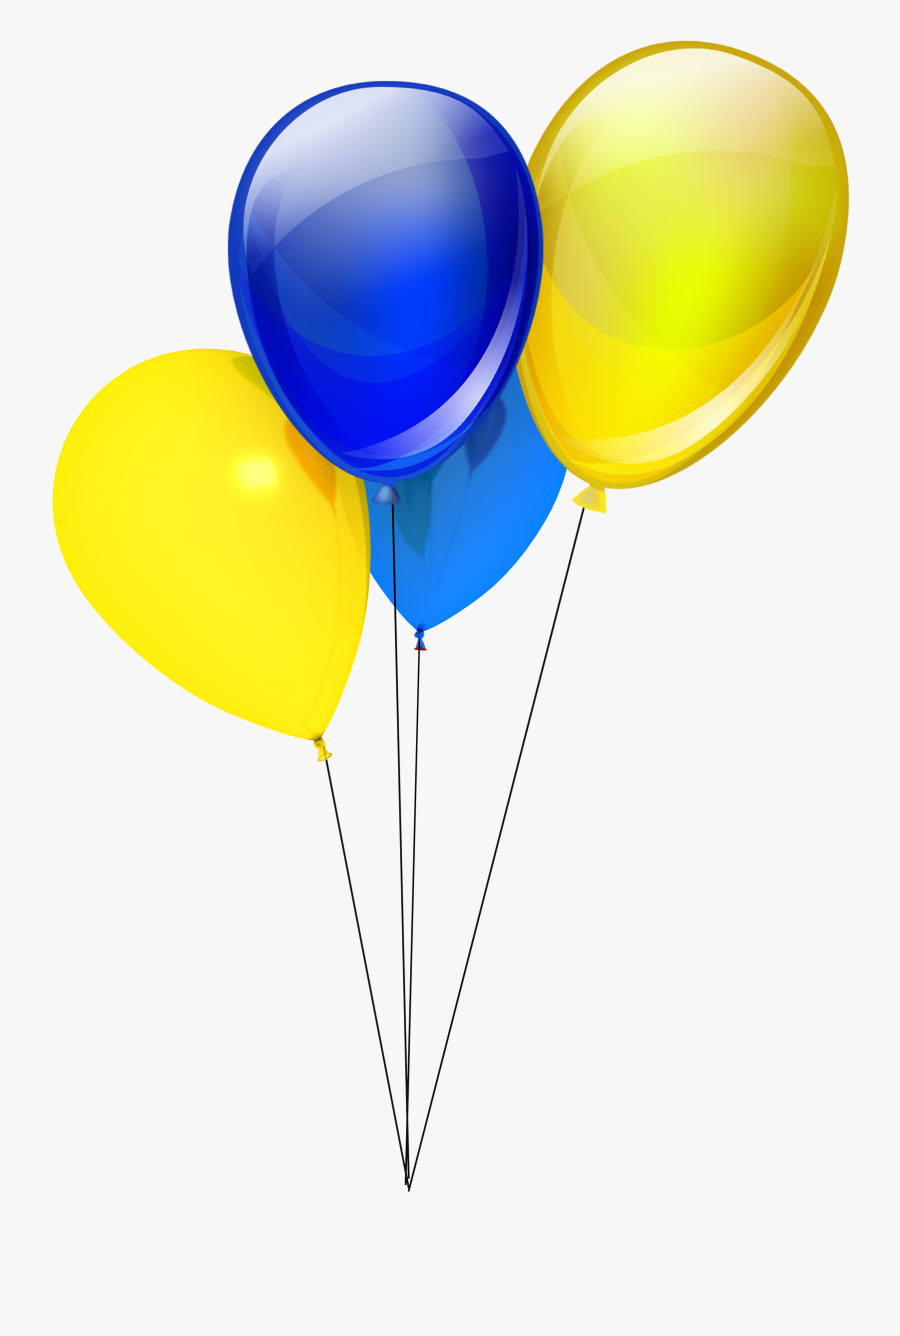 Balloons Png Golden - Yellow And Blue Balloon, Transparent Clipart